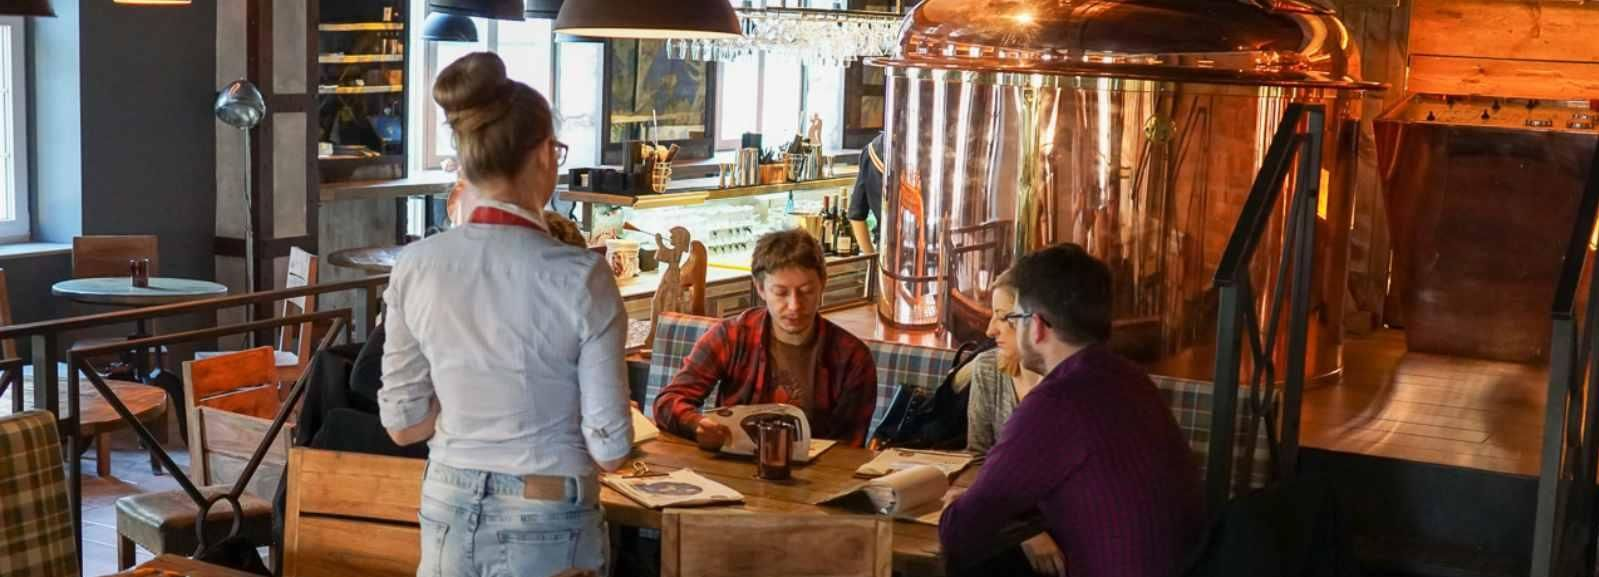 Wroclaw: Guided Tour & Beer Tasting